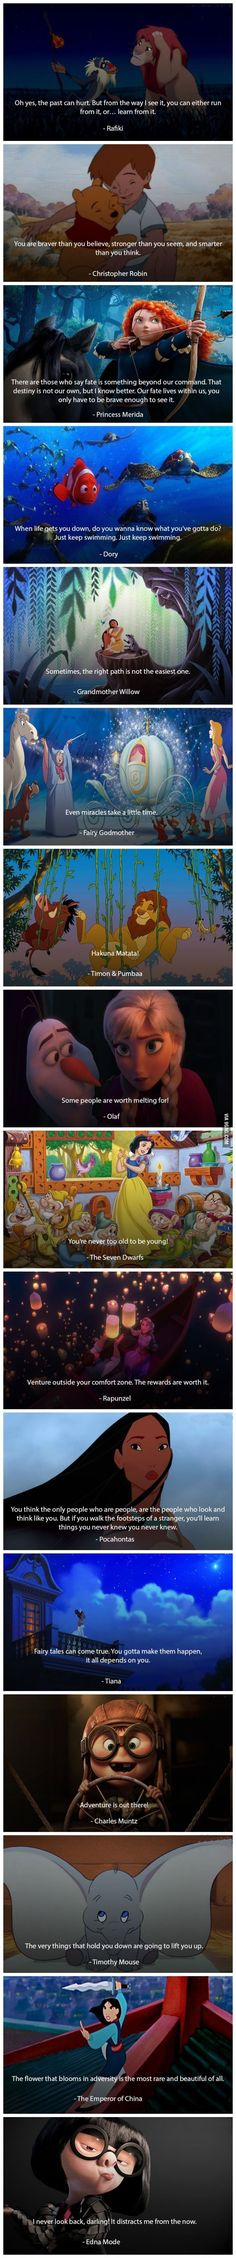 16 Times Disney Characters Gave You Amazing Life Advice Personal Developmental Quotes #Quote